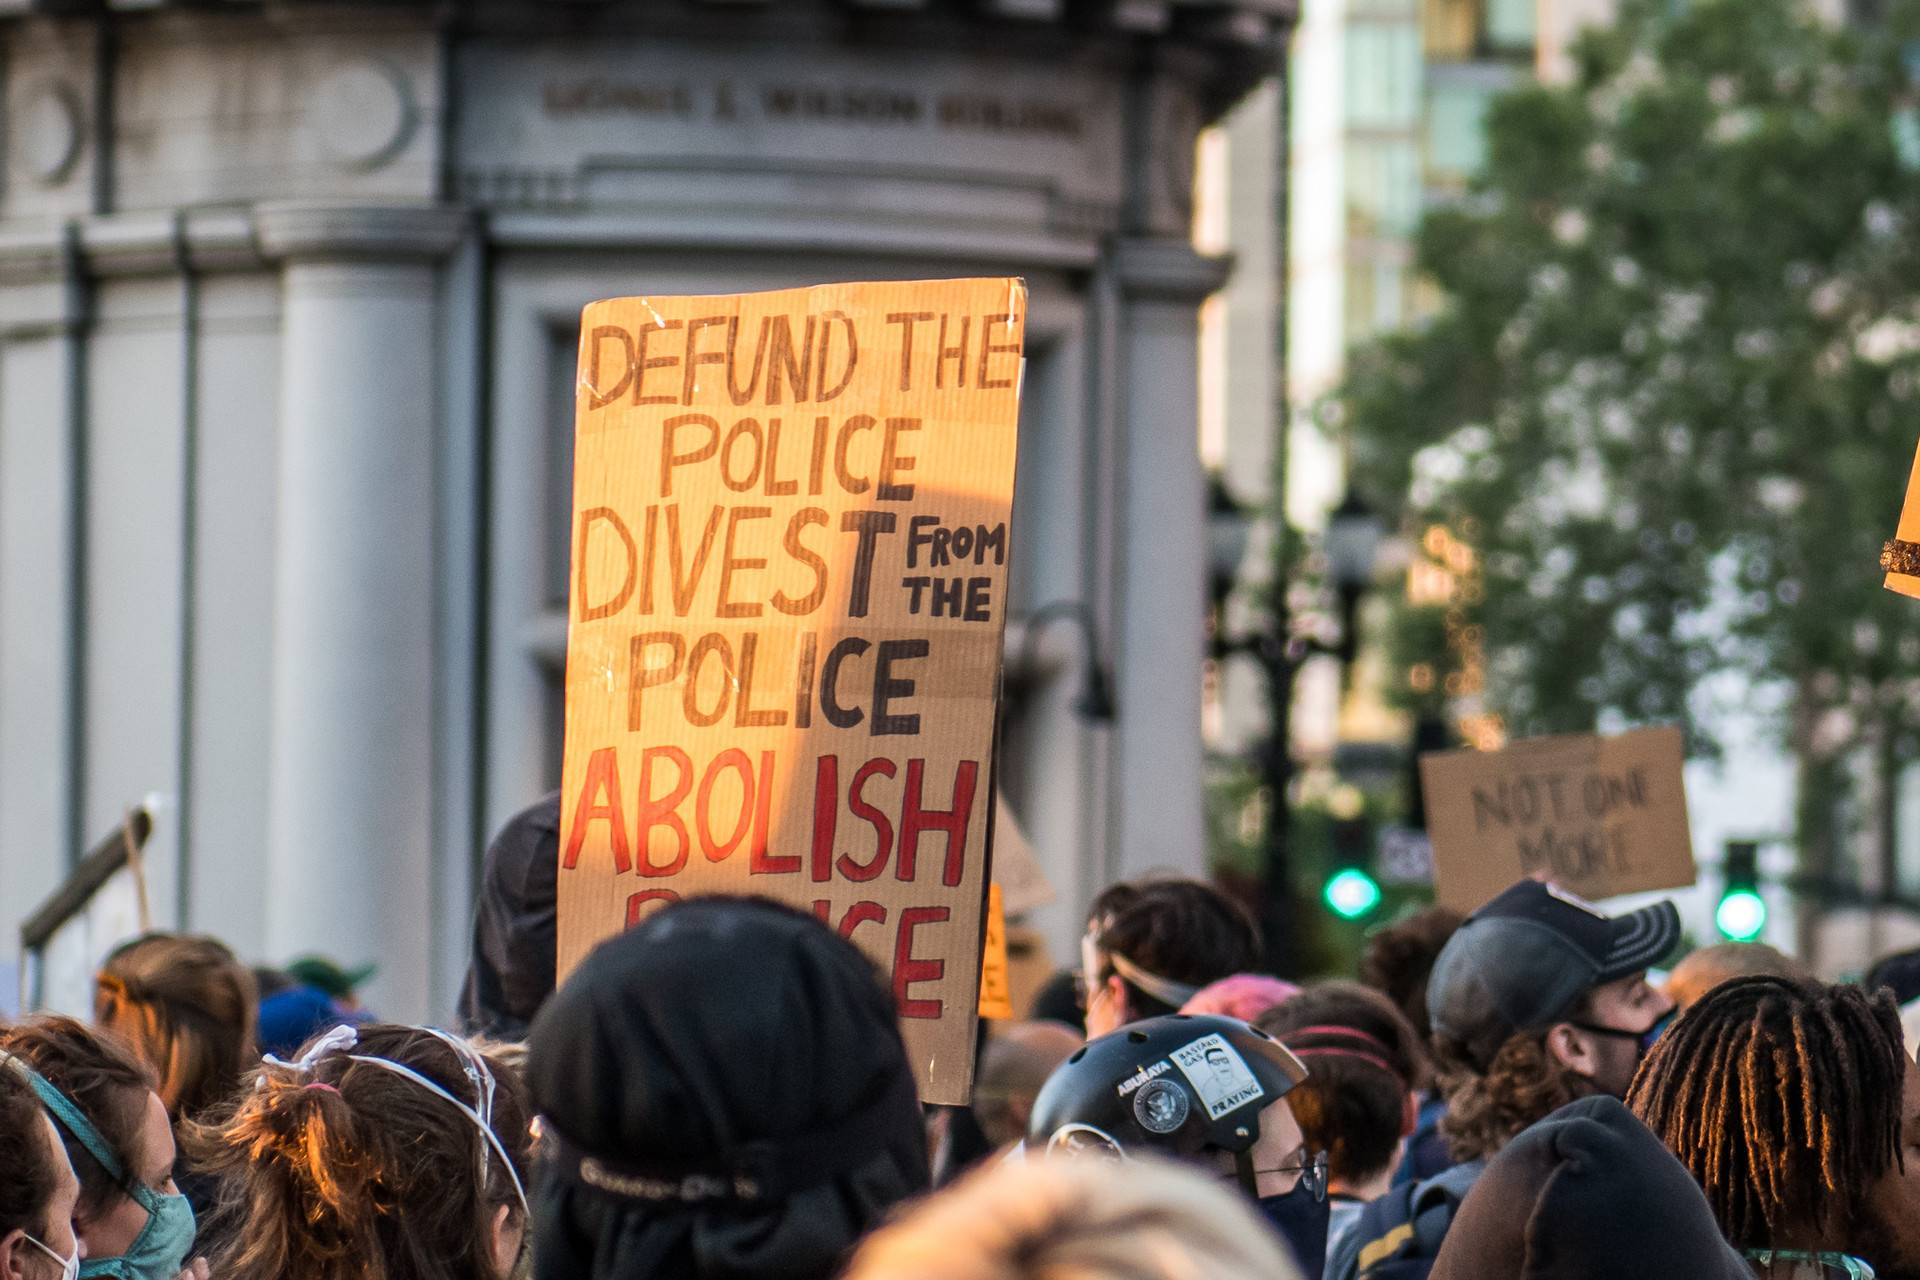 Demonstrators gather in Downtown Oakland to listen to speakers during a protest against police violence on June 3, 2020. Beth LaBerge/KQED